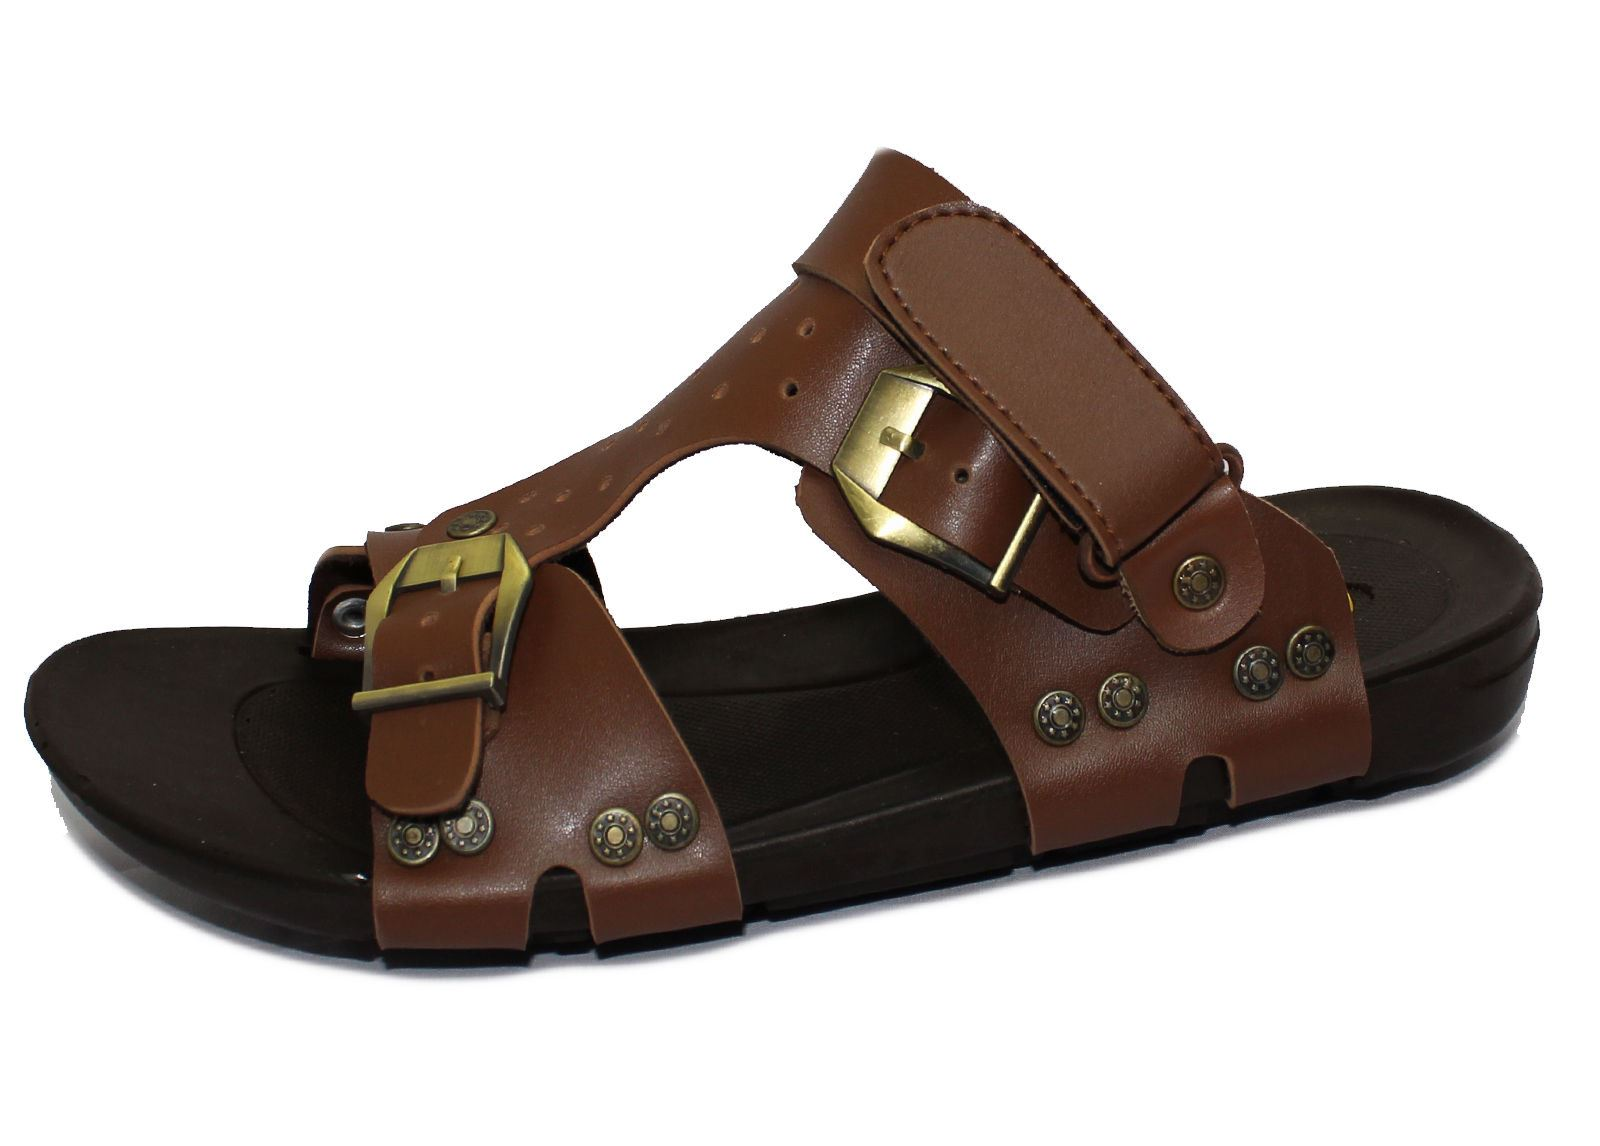 BOYS SUMMER SANDALS CASUAL FLAT FLIP FLOP STRAPS GLADIATOR ...